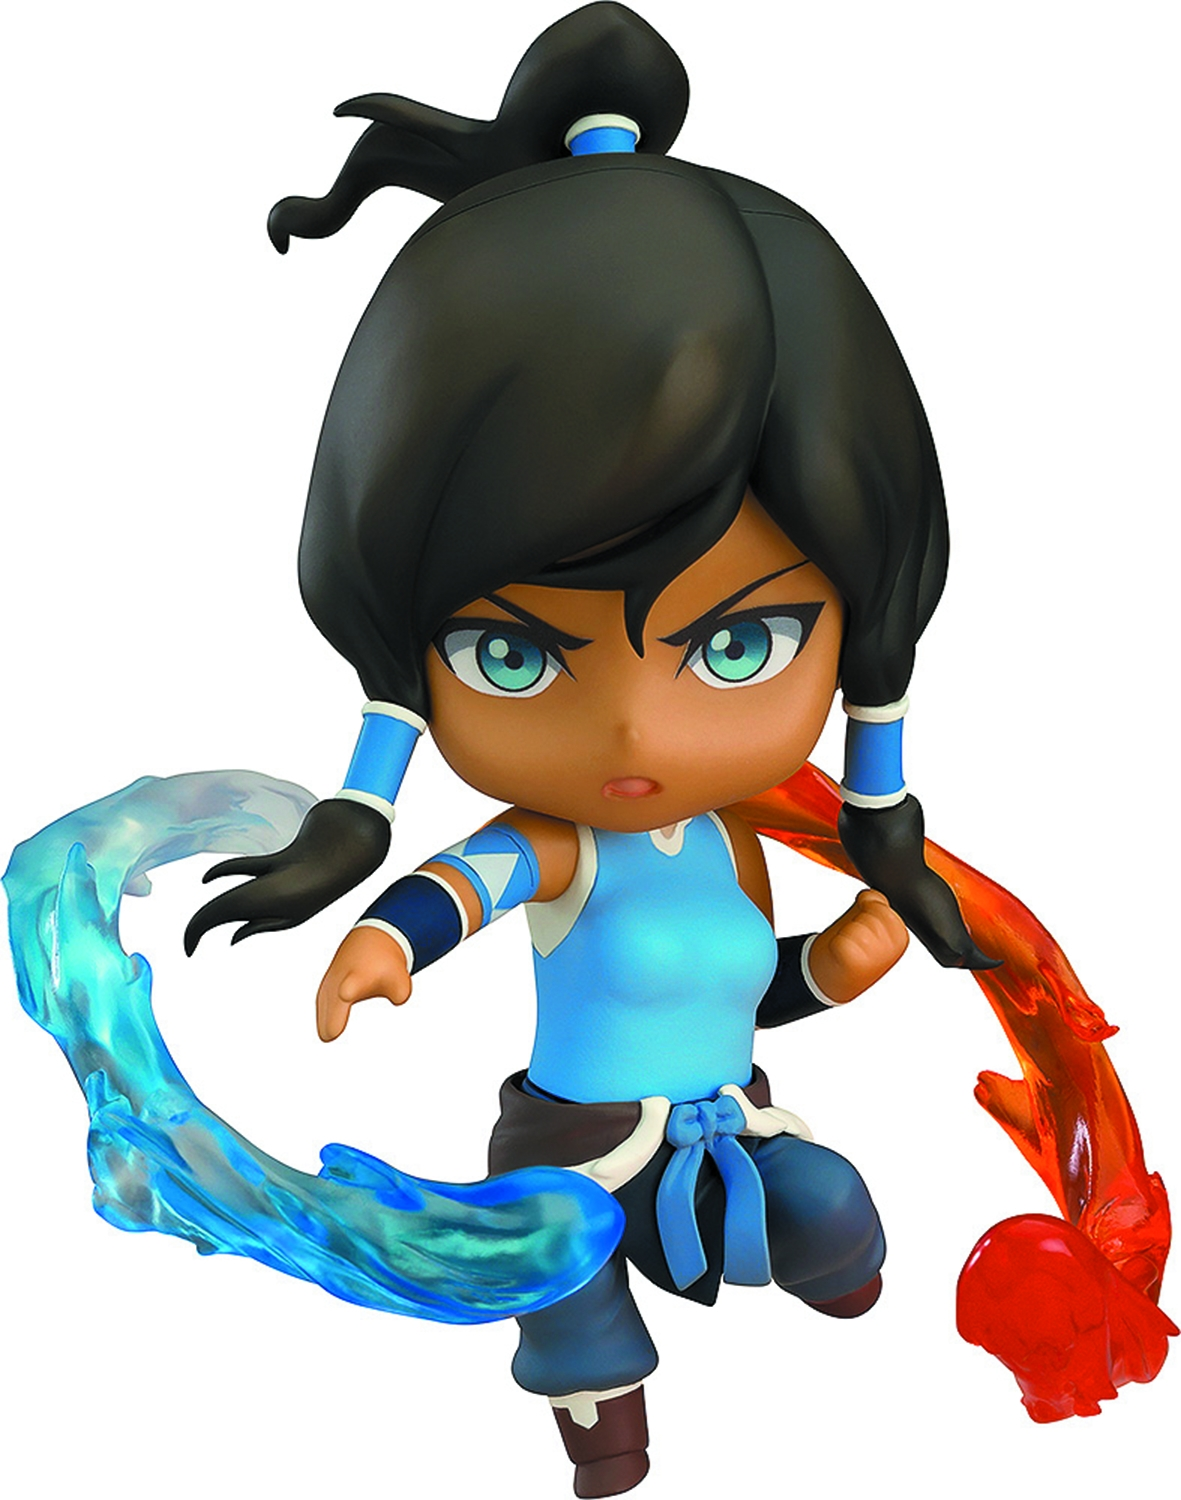 The Legend of Korra: Korra Nendoroid